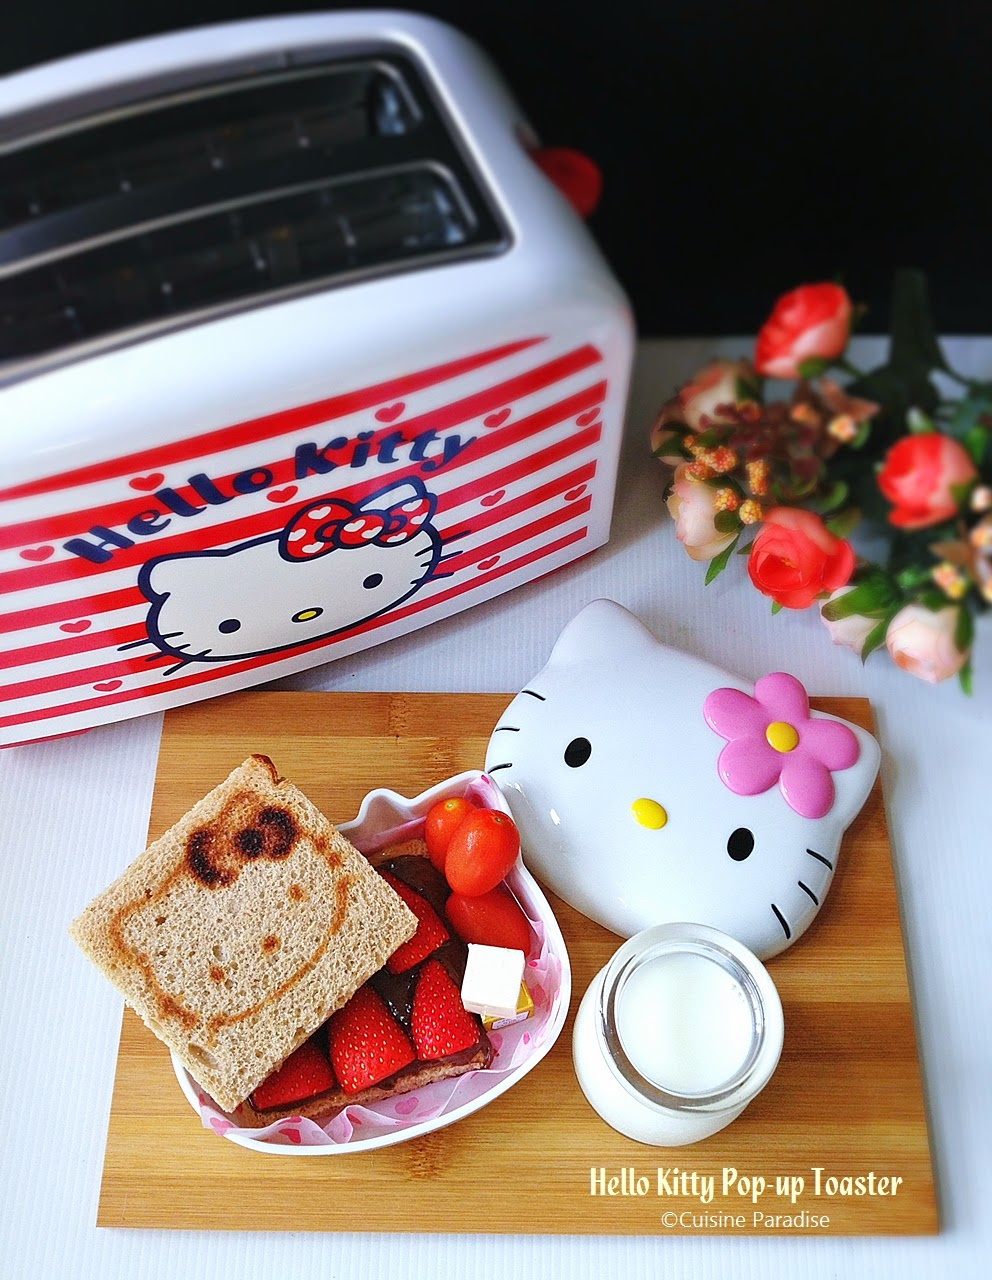 cuisine paradise singapore food blog recipes reviews and travel hello kitty brunch hello. Black Bedroom Furniture Sets. Home Design Ideas